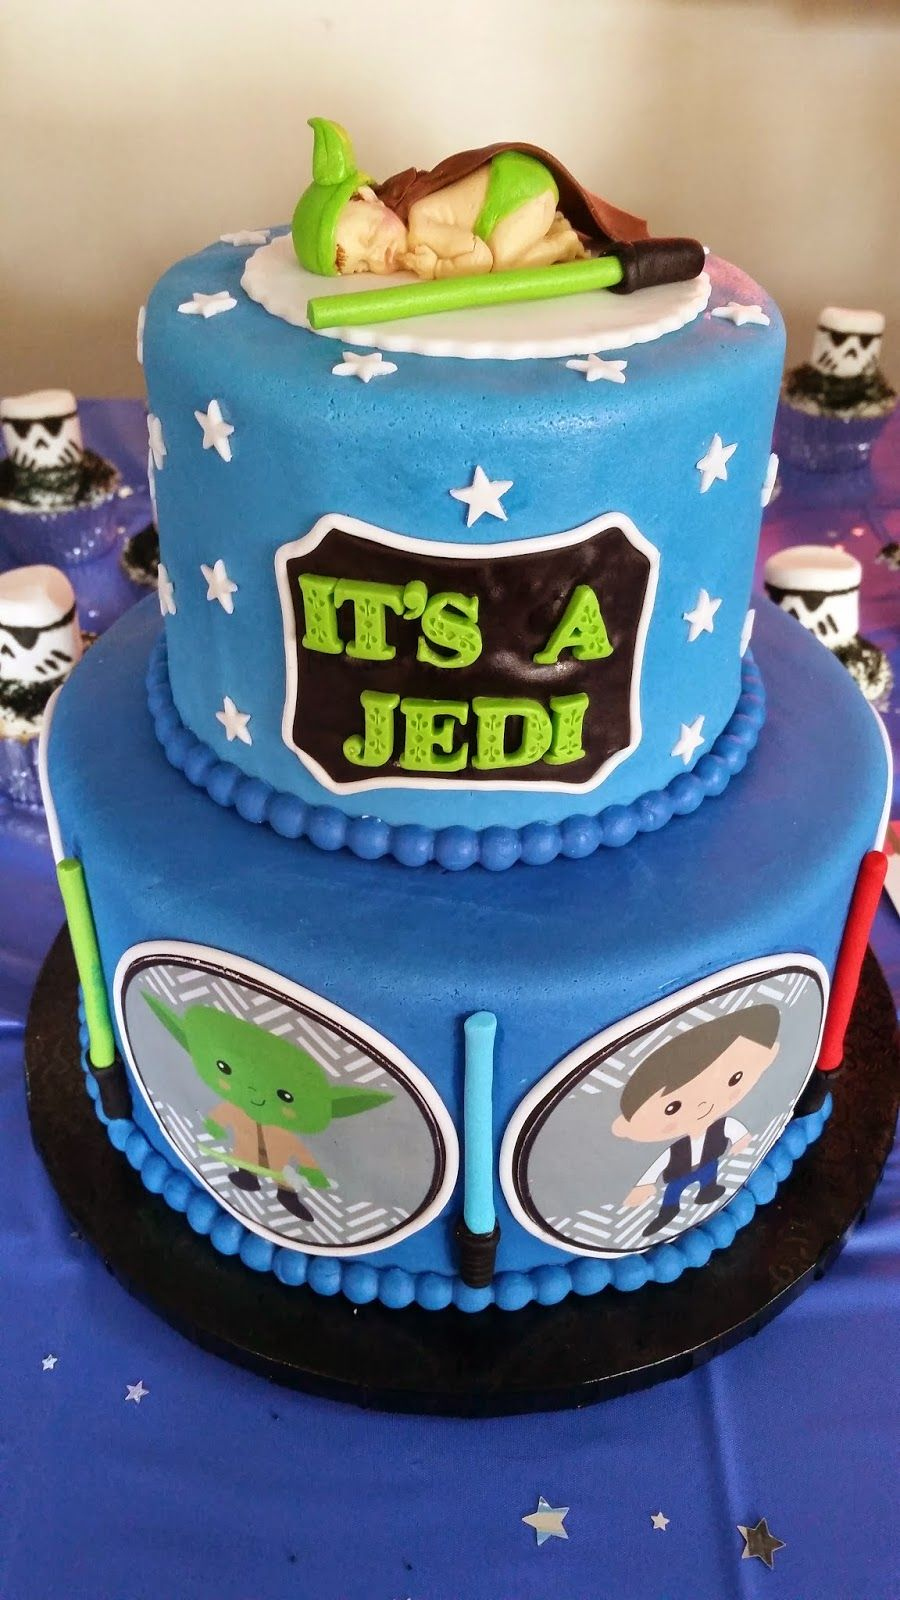 Elegant Star Wars Themed Cake For A Baby Shower! I Like The Baby Boy On Top